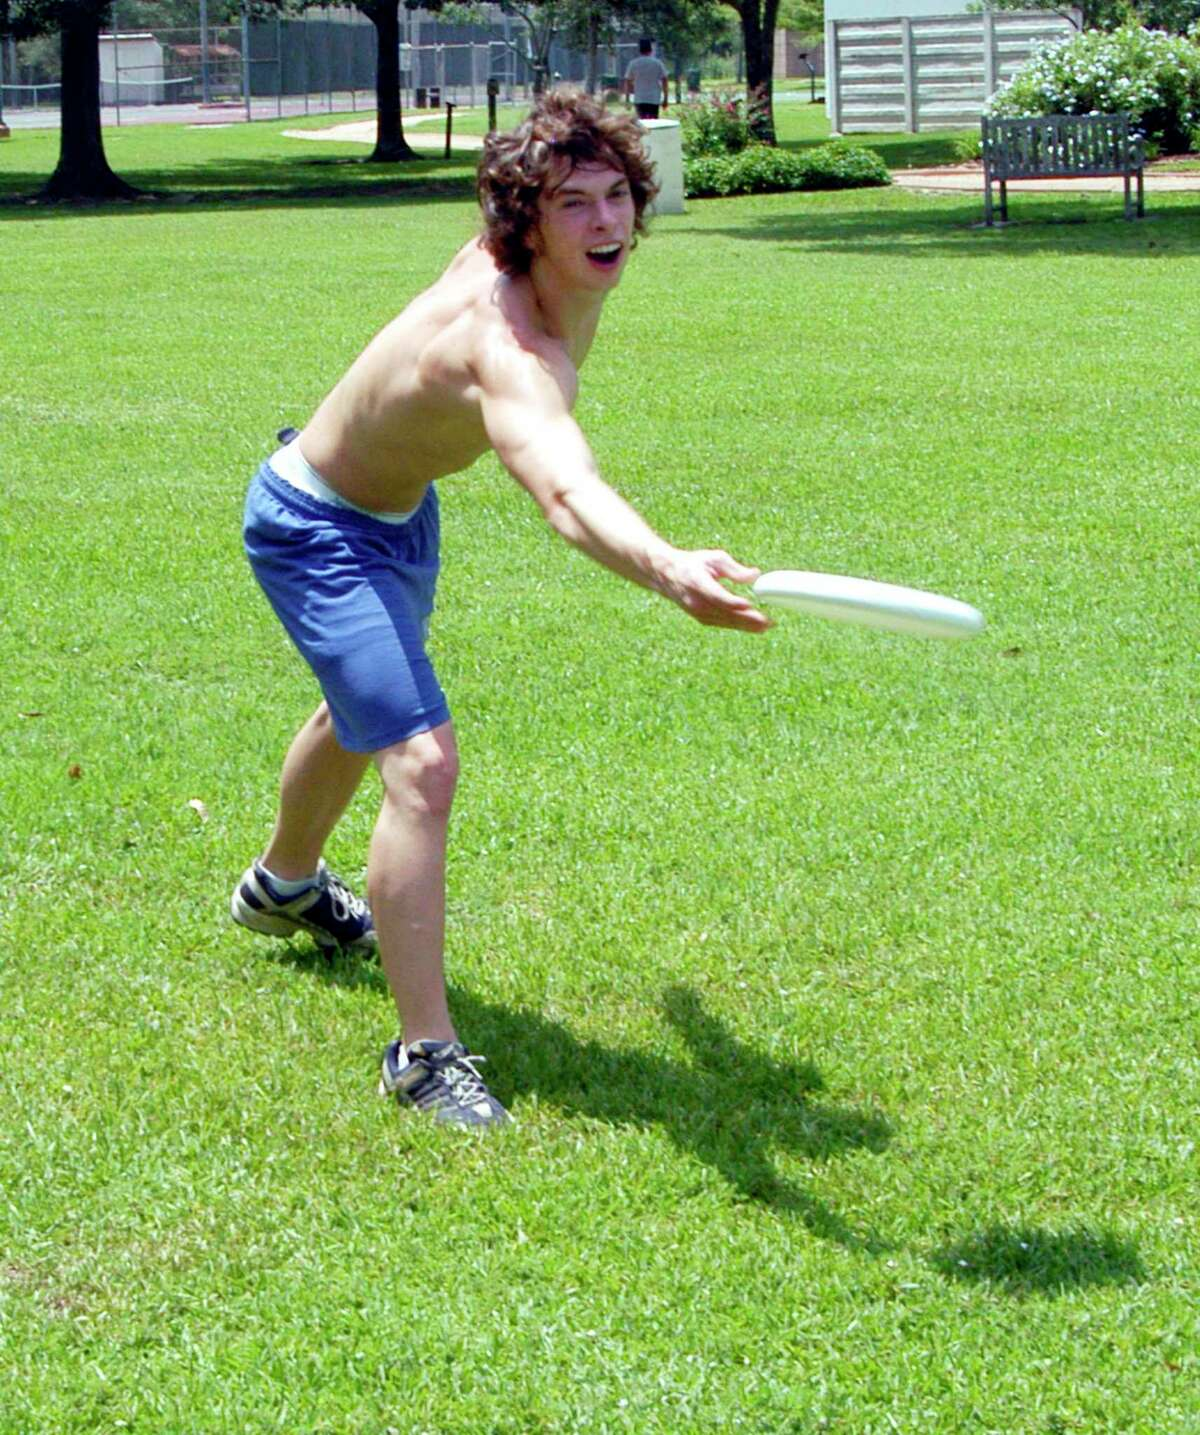 Disc golf has long been popular in Friendswood, as is shown in this 2005 photo of Kyle Whigham playing in Stevenson Park. A new course opens this month on Shadwell.